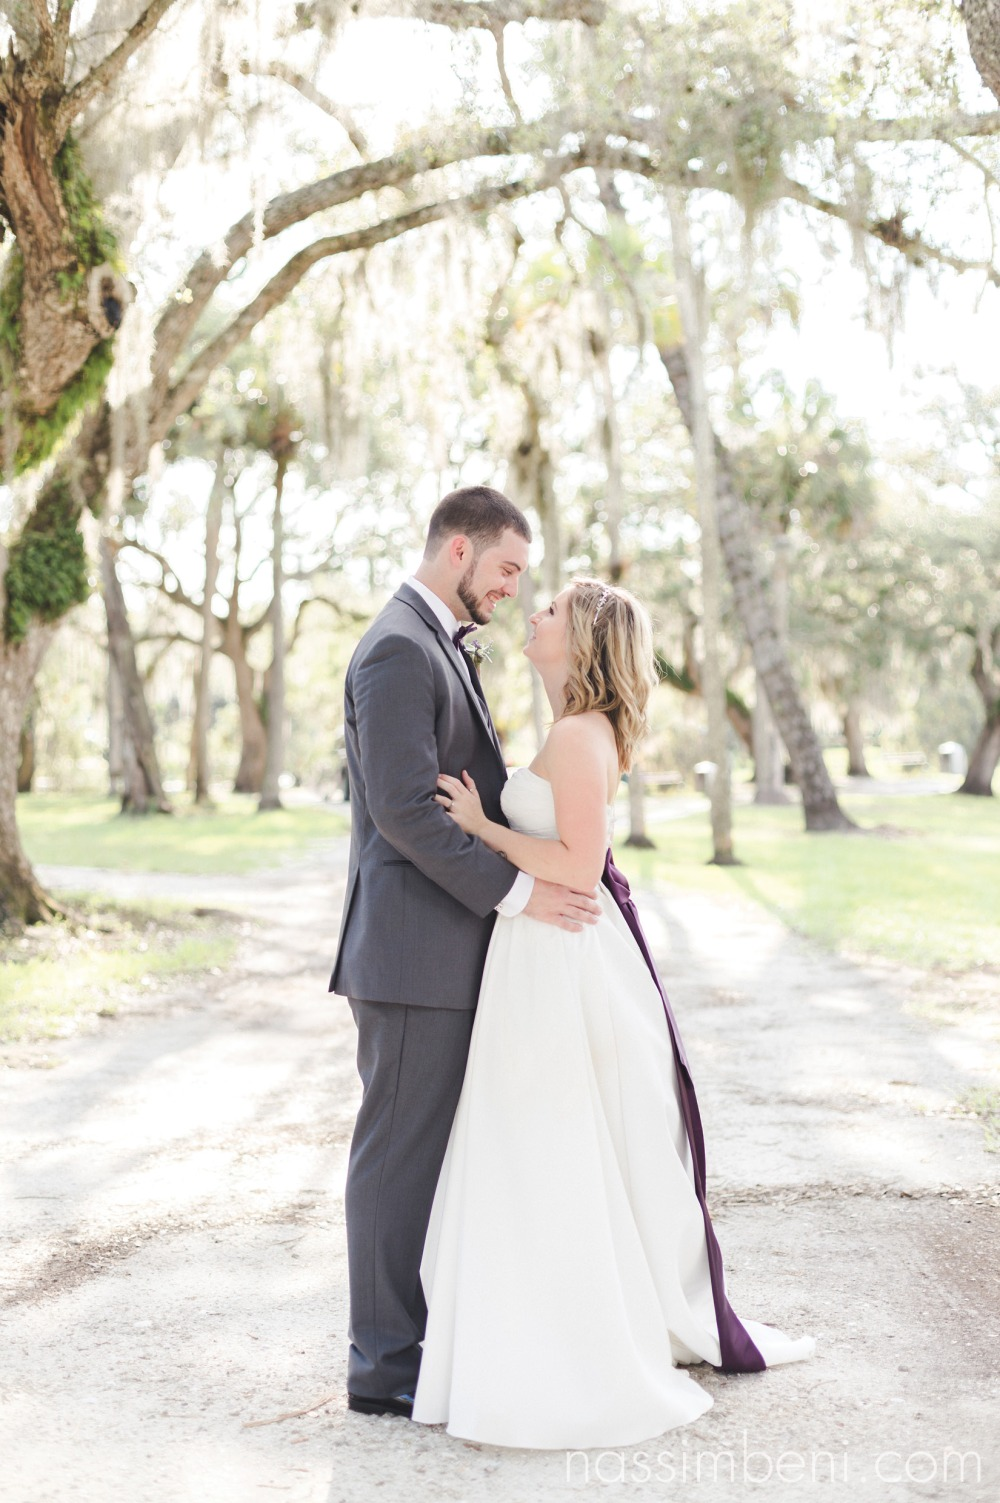 lavender-plum-and-forest-inspired-wedding-white-city-park-wedding-in-ft-pierce-florida-nassimbeni-photography-40